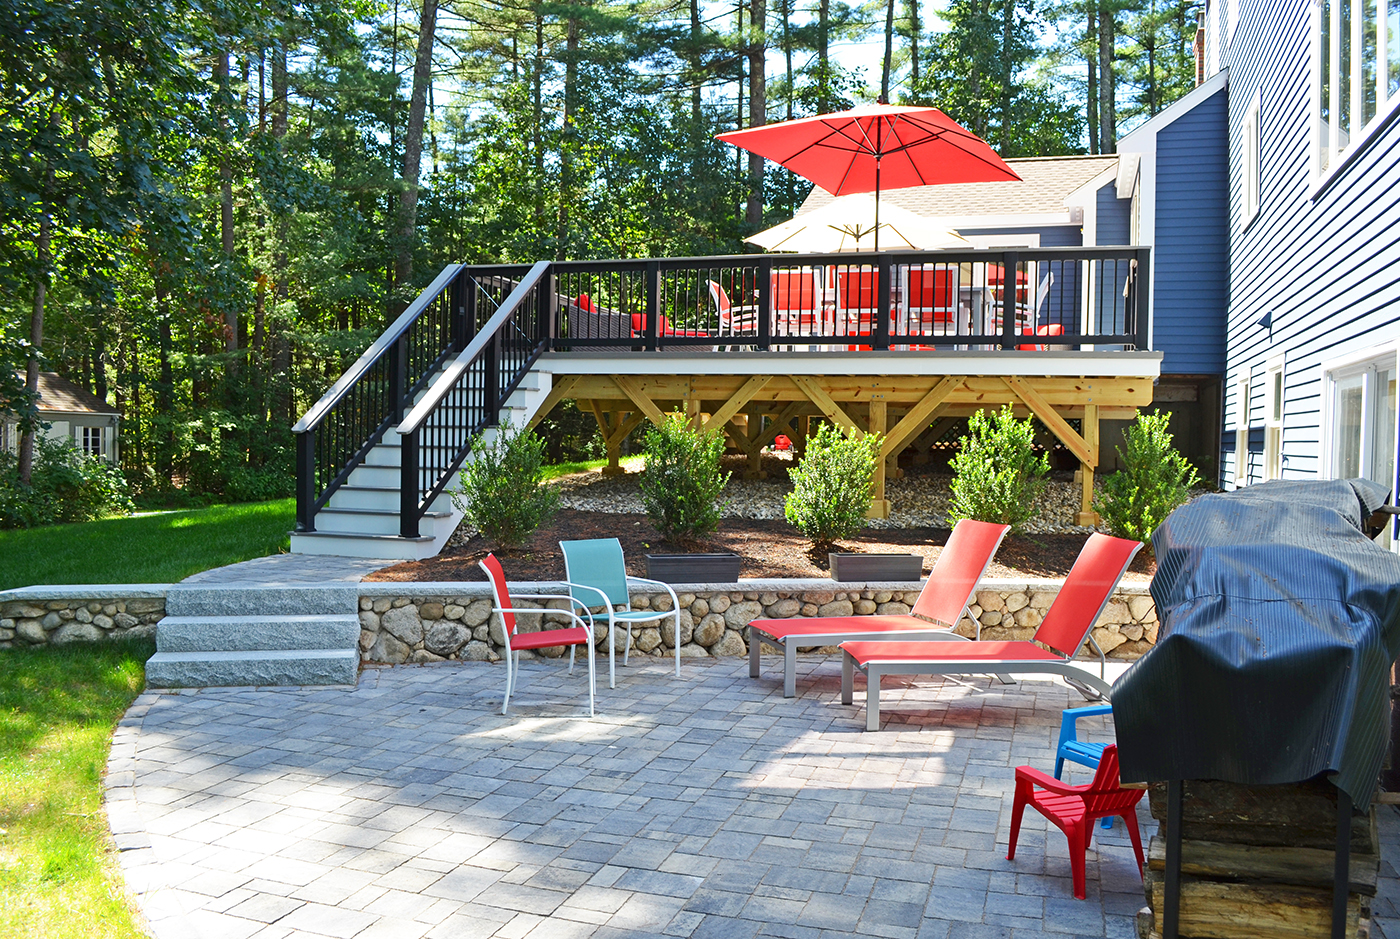 An Oakville Deck And Patio Combination Gives Your Backyard A Natural Flow  From The Home Out To The Lawn, But It Also Gives You Additional Space On  The Patio ...